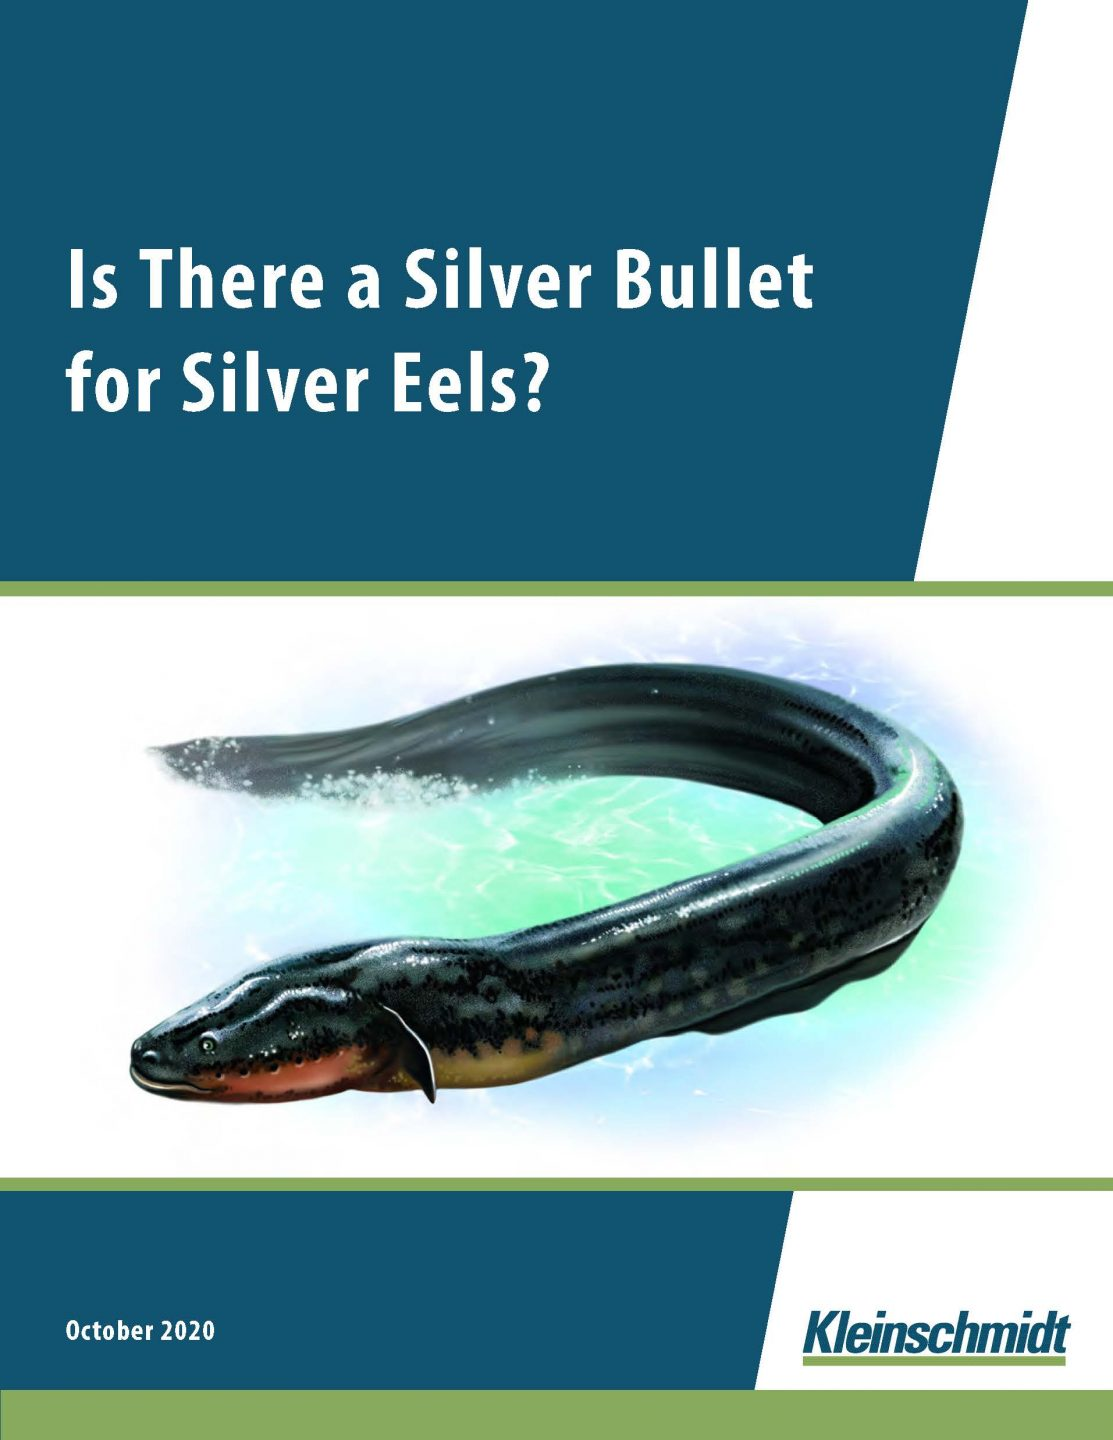 Silver Bullet for Silver Eels